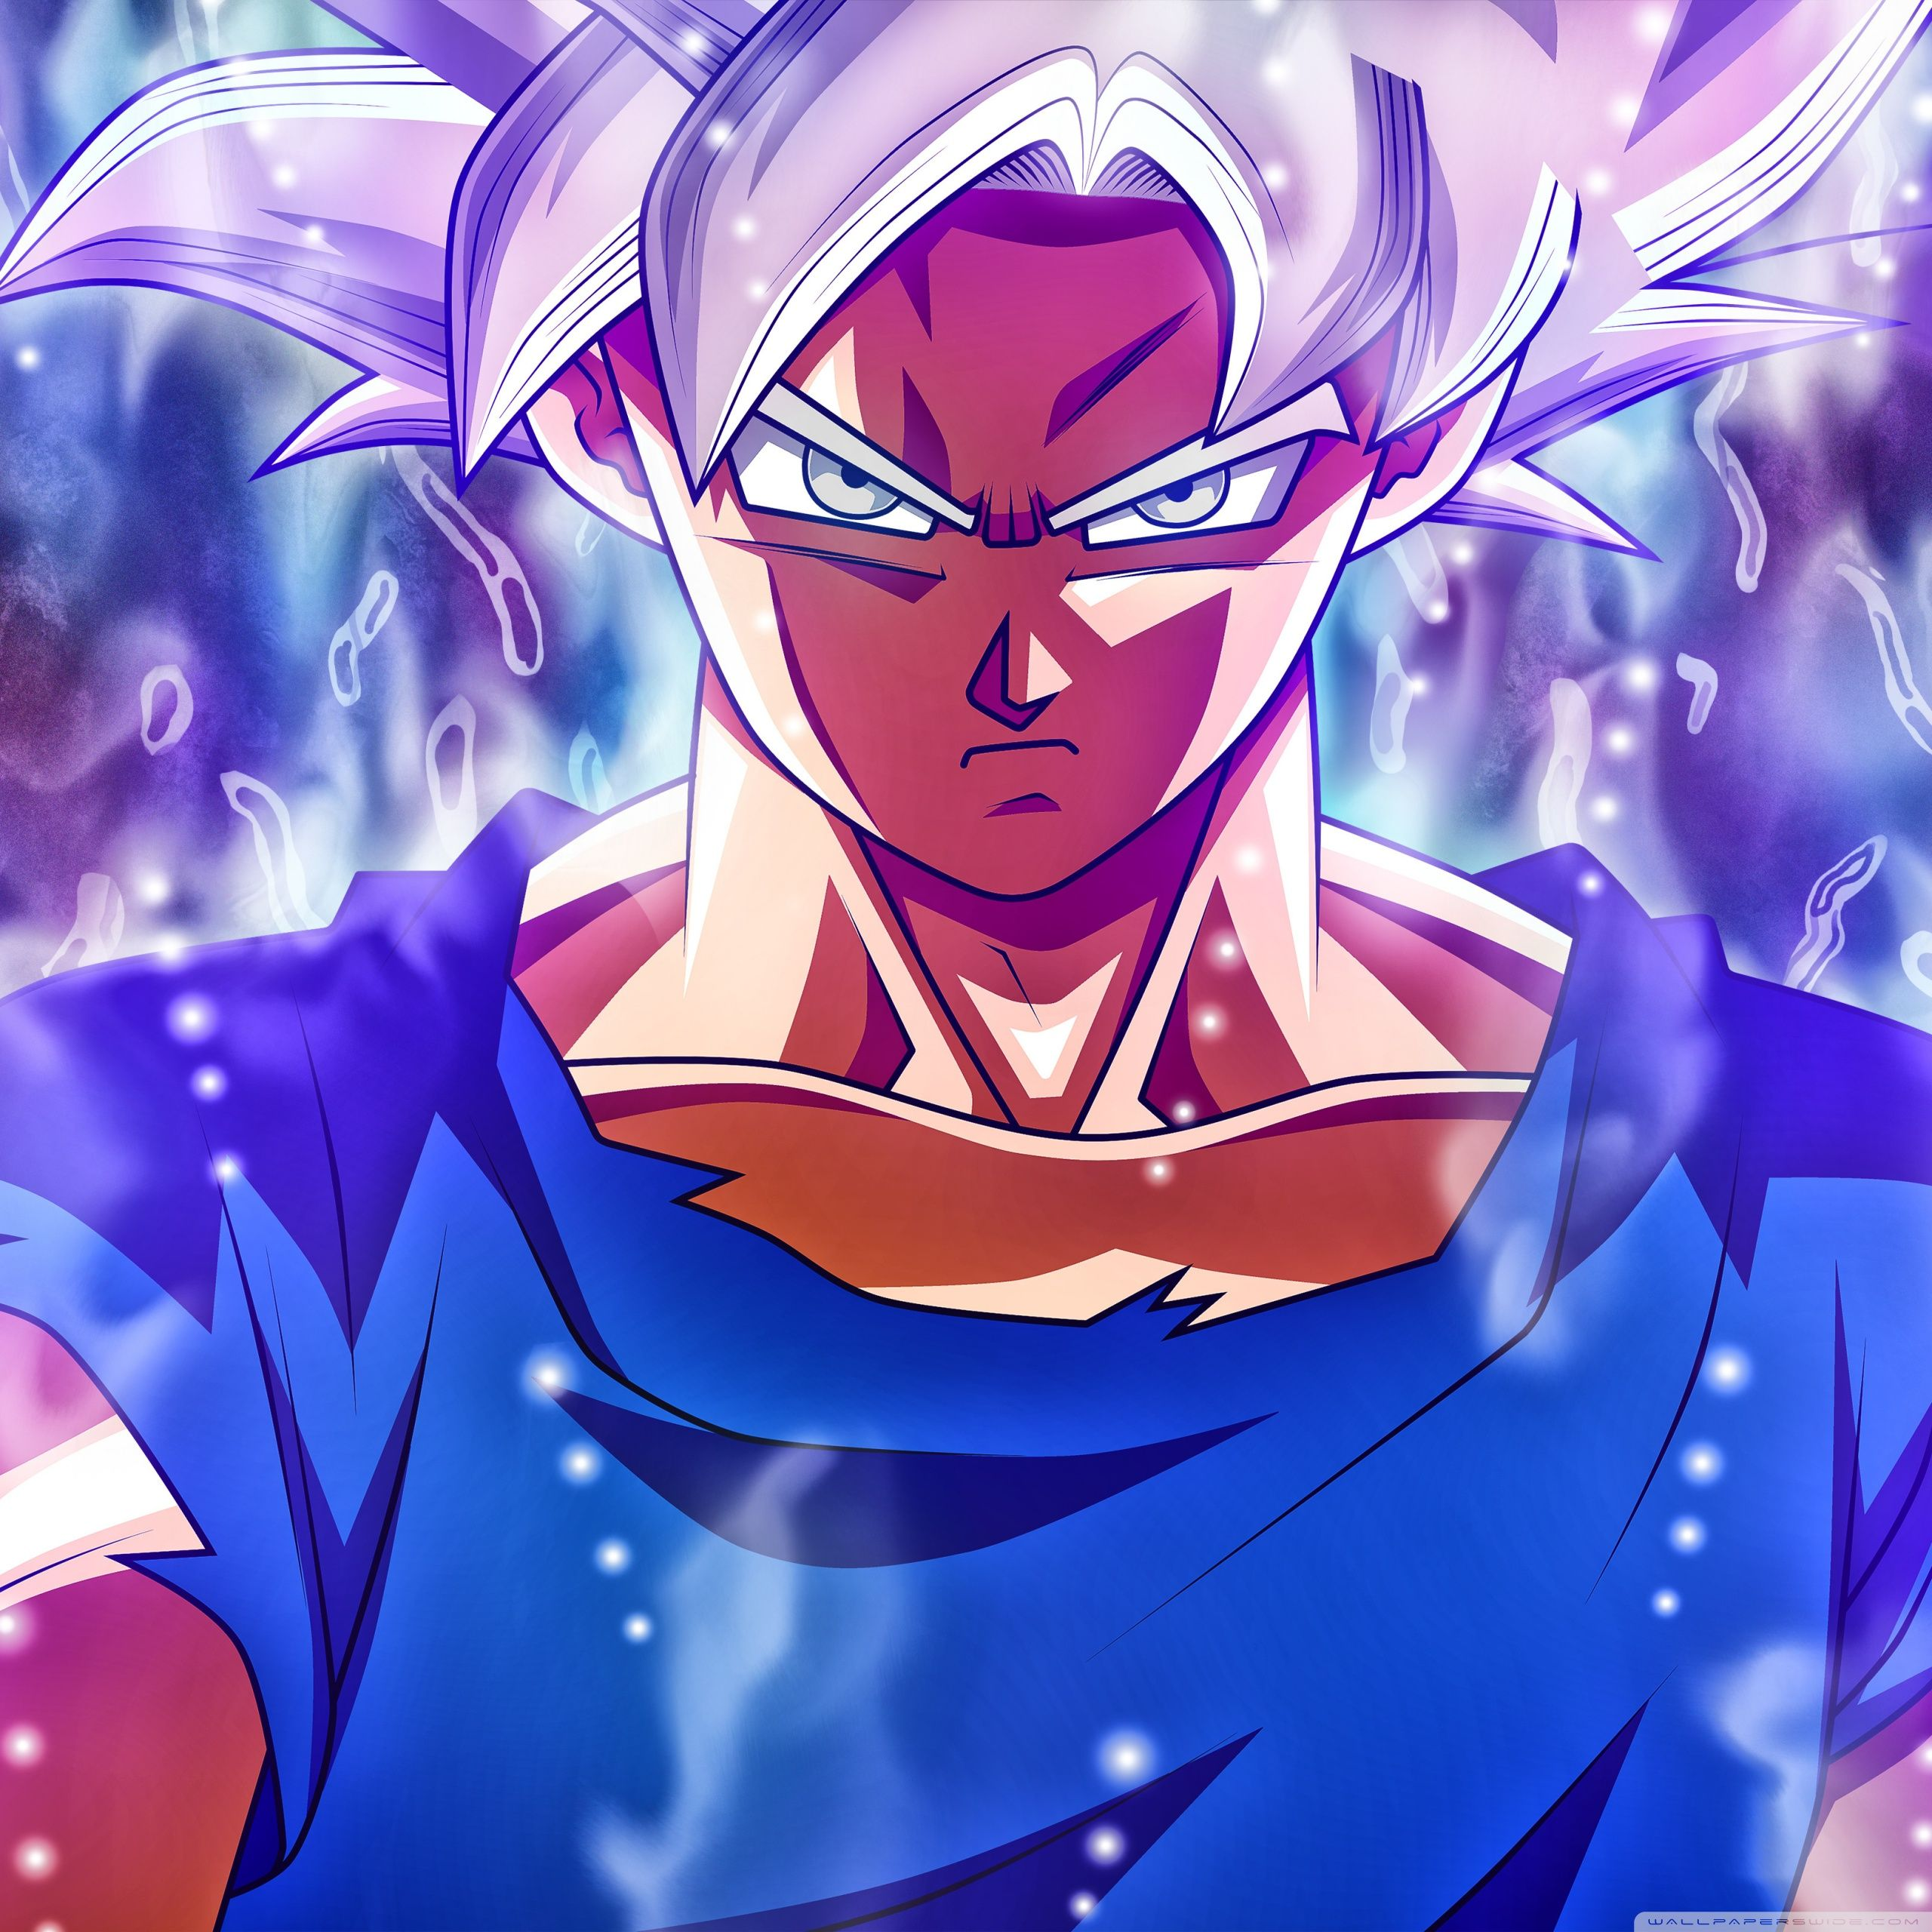 Complete Ultra Instinct Goku Wallpapers On Wallpaperdog